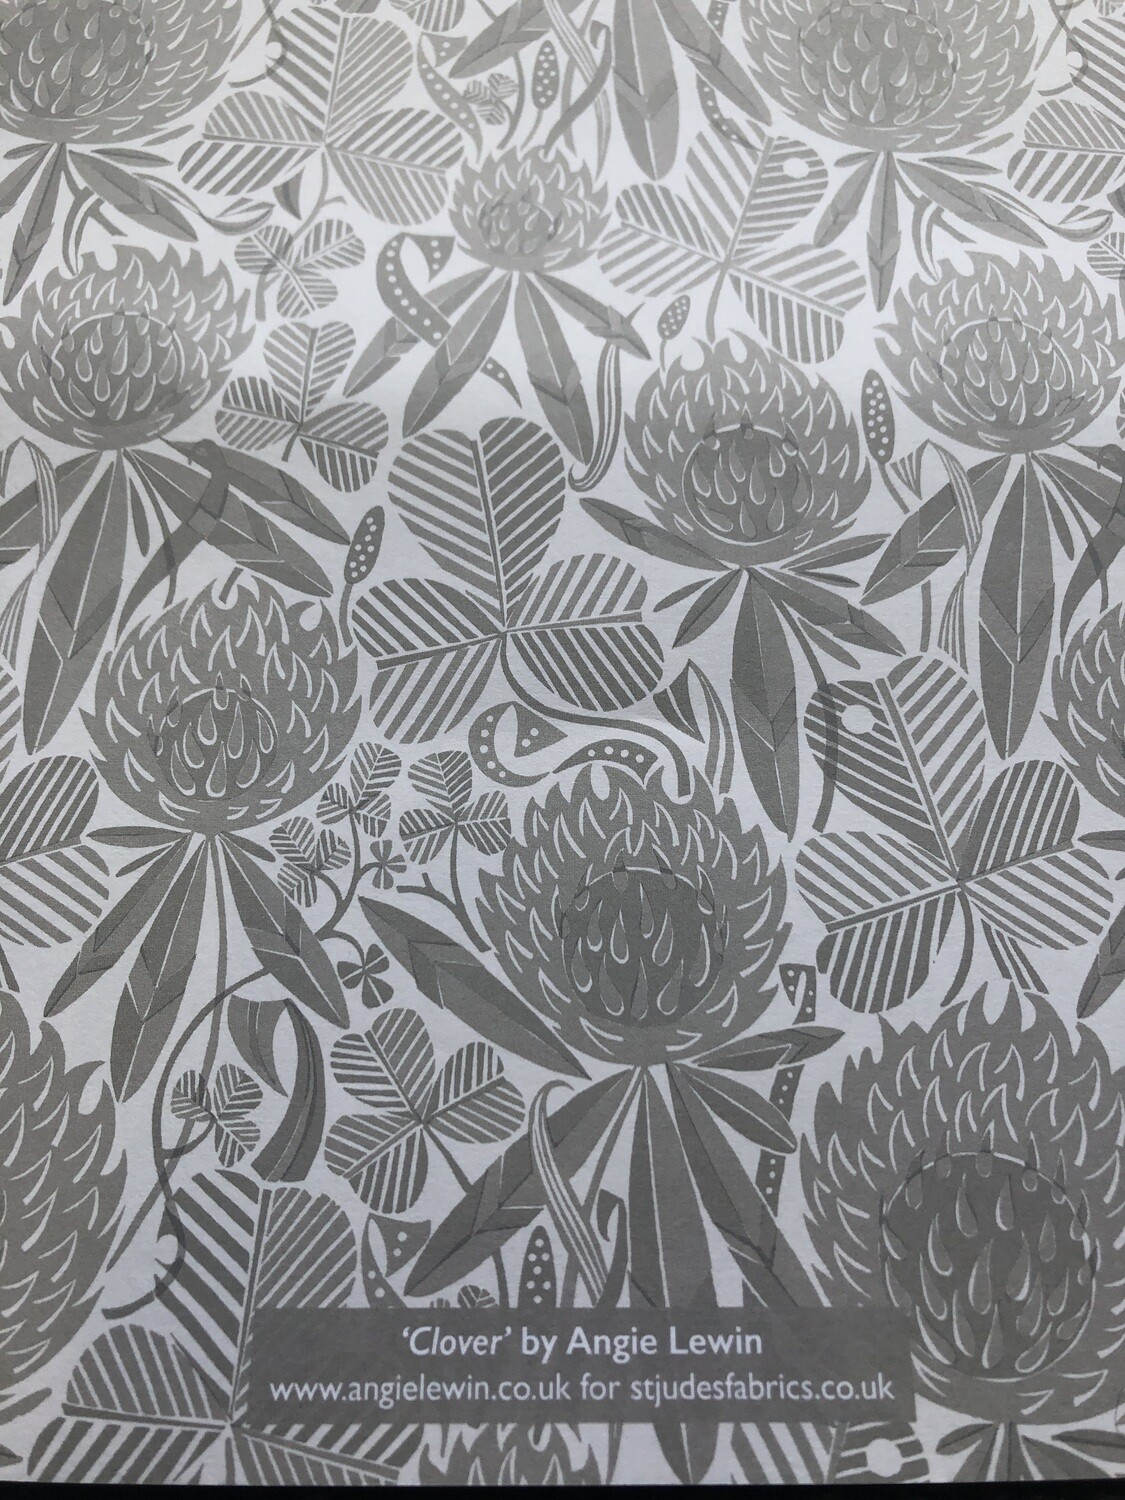 ART ÁNGELS - Wrapping Paper - 68cm x 50cm Clover By Angie Lewin